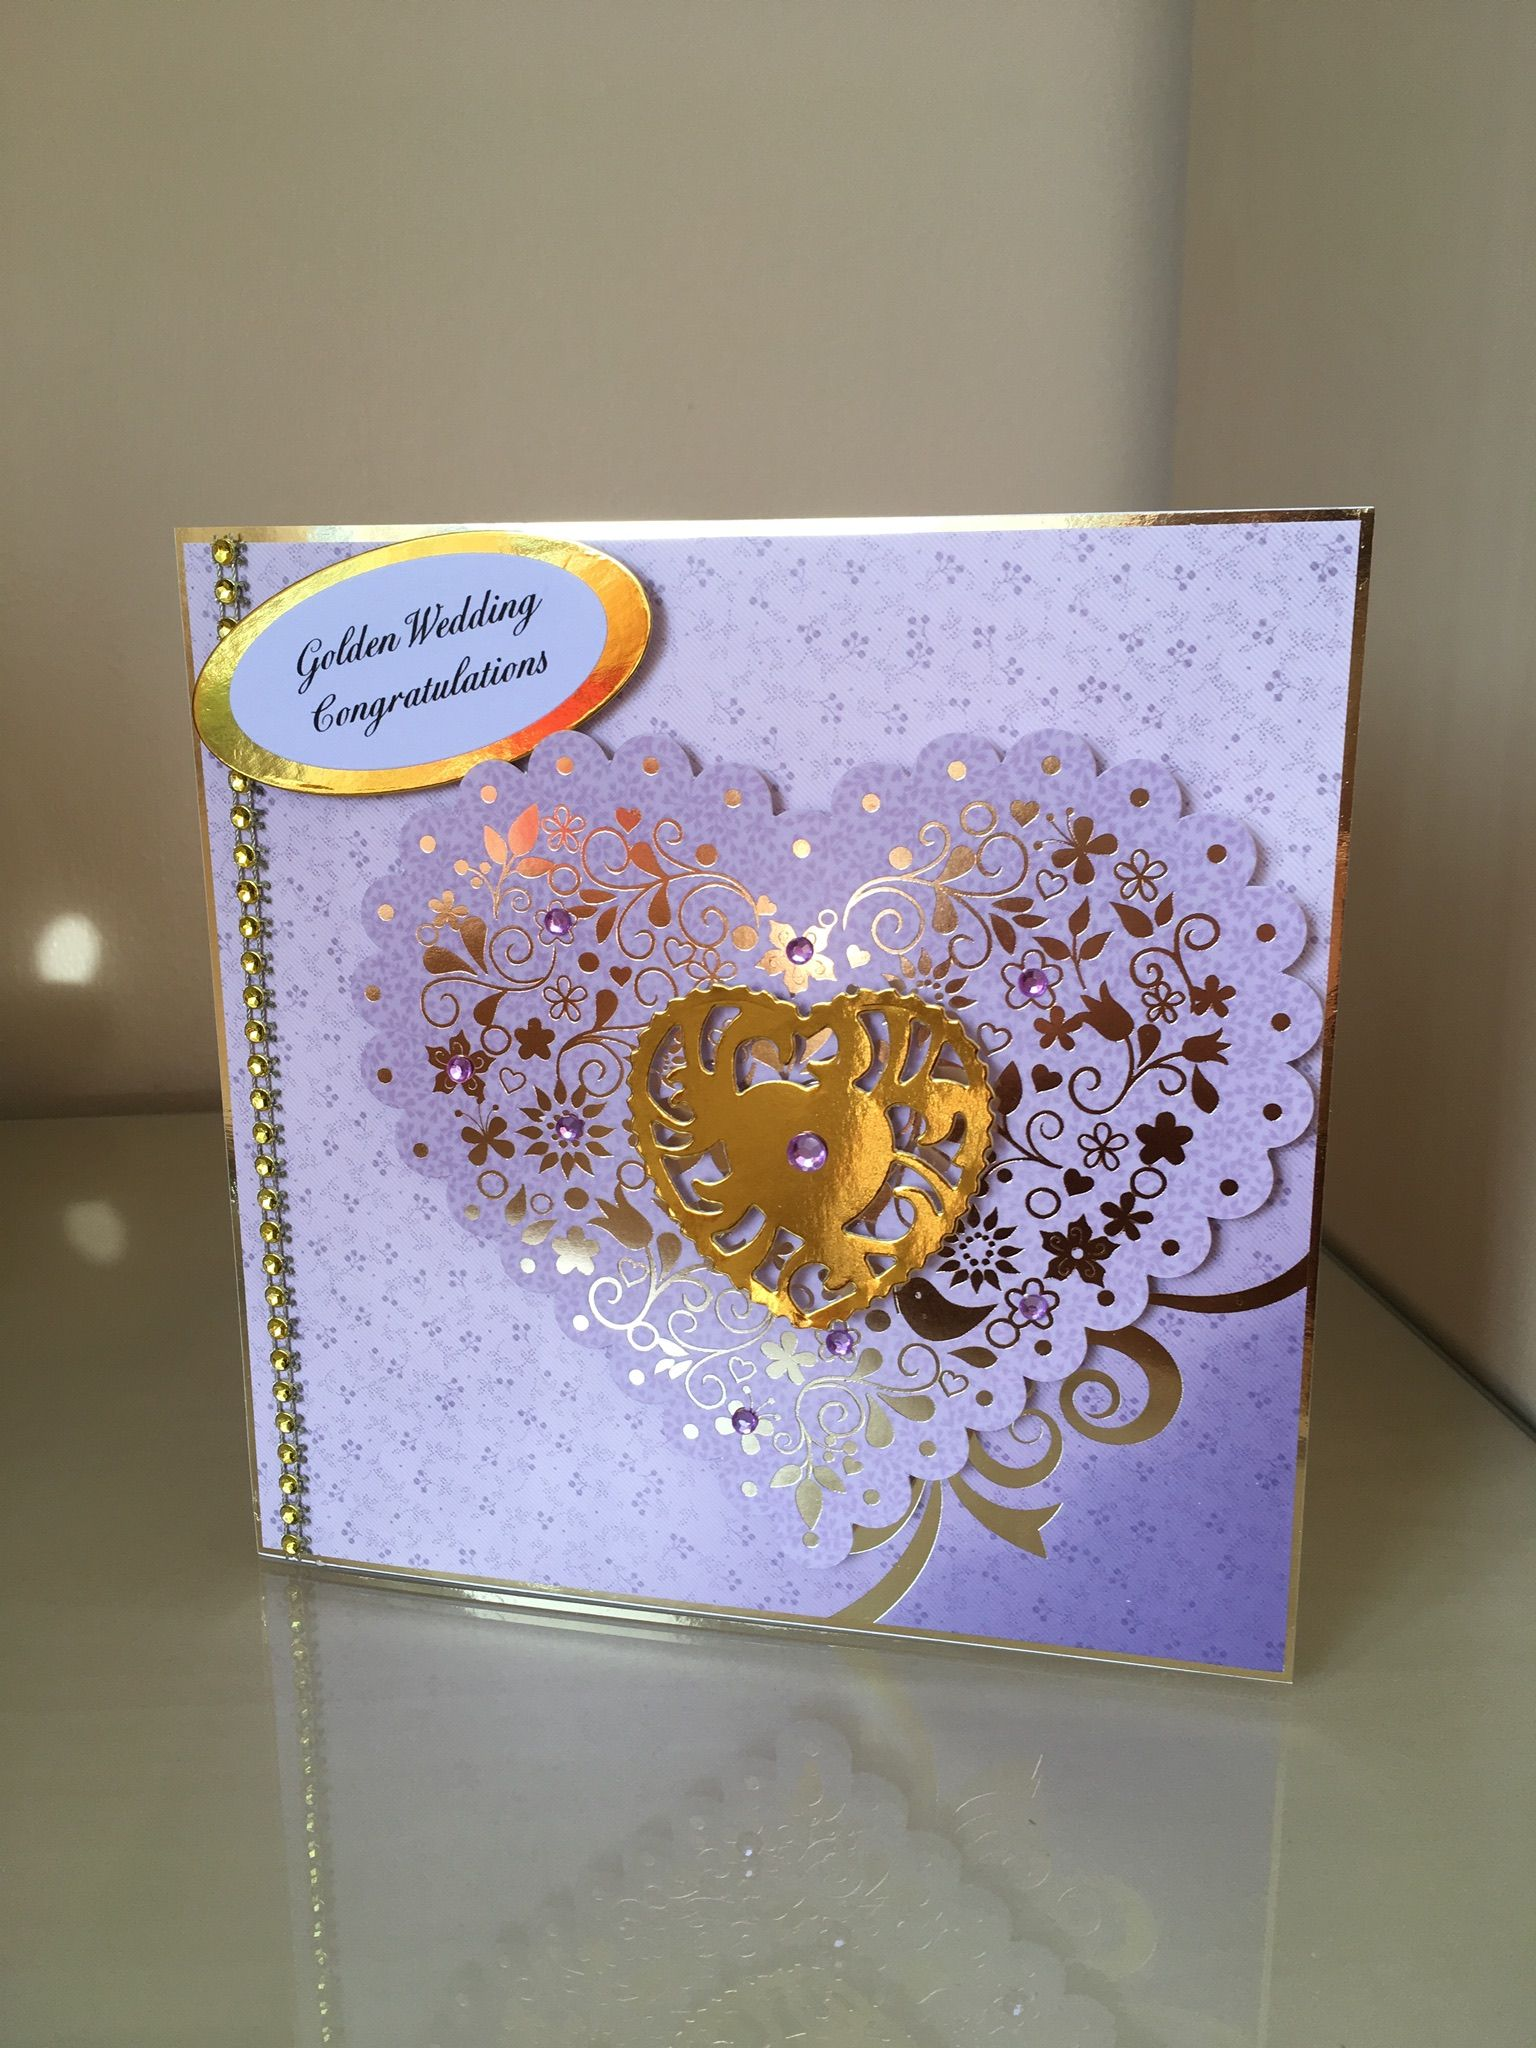 Golden wedding card made from Hunkydory kit